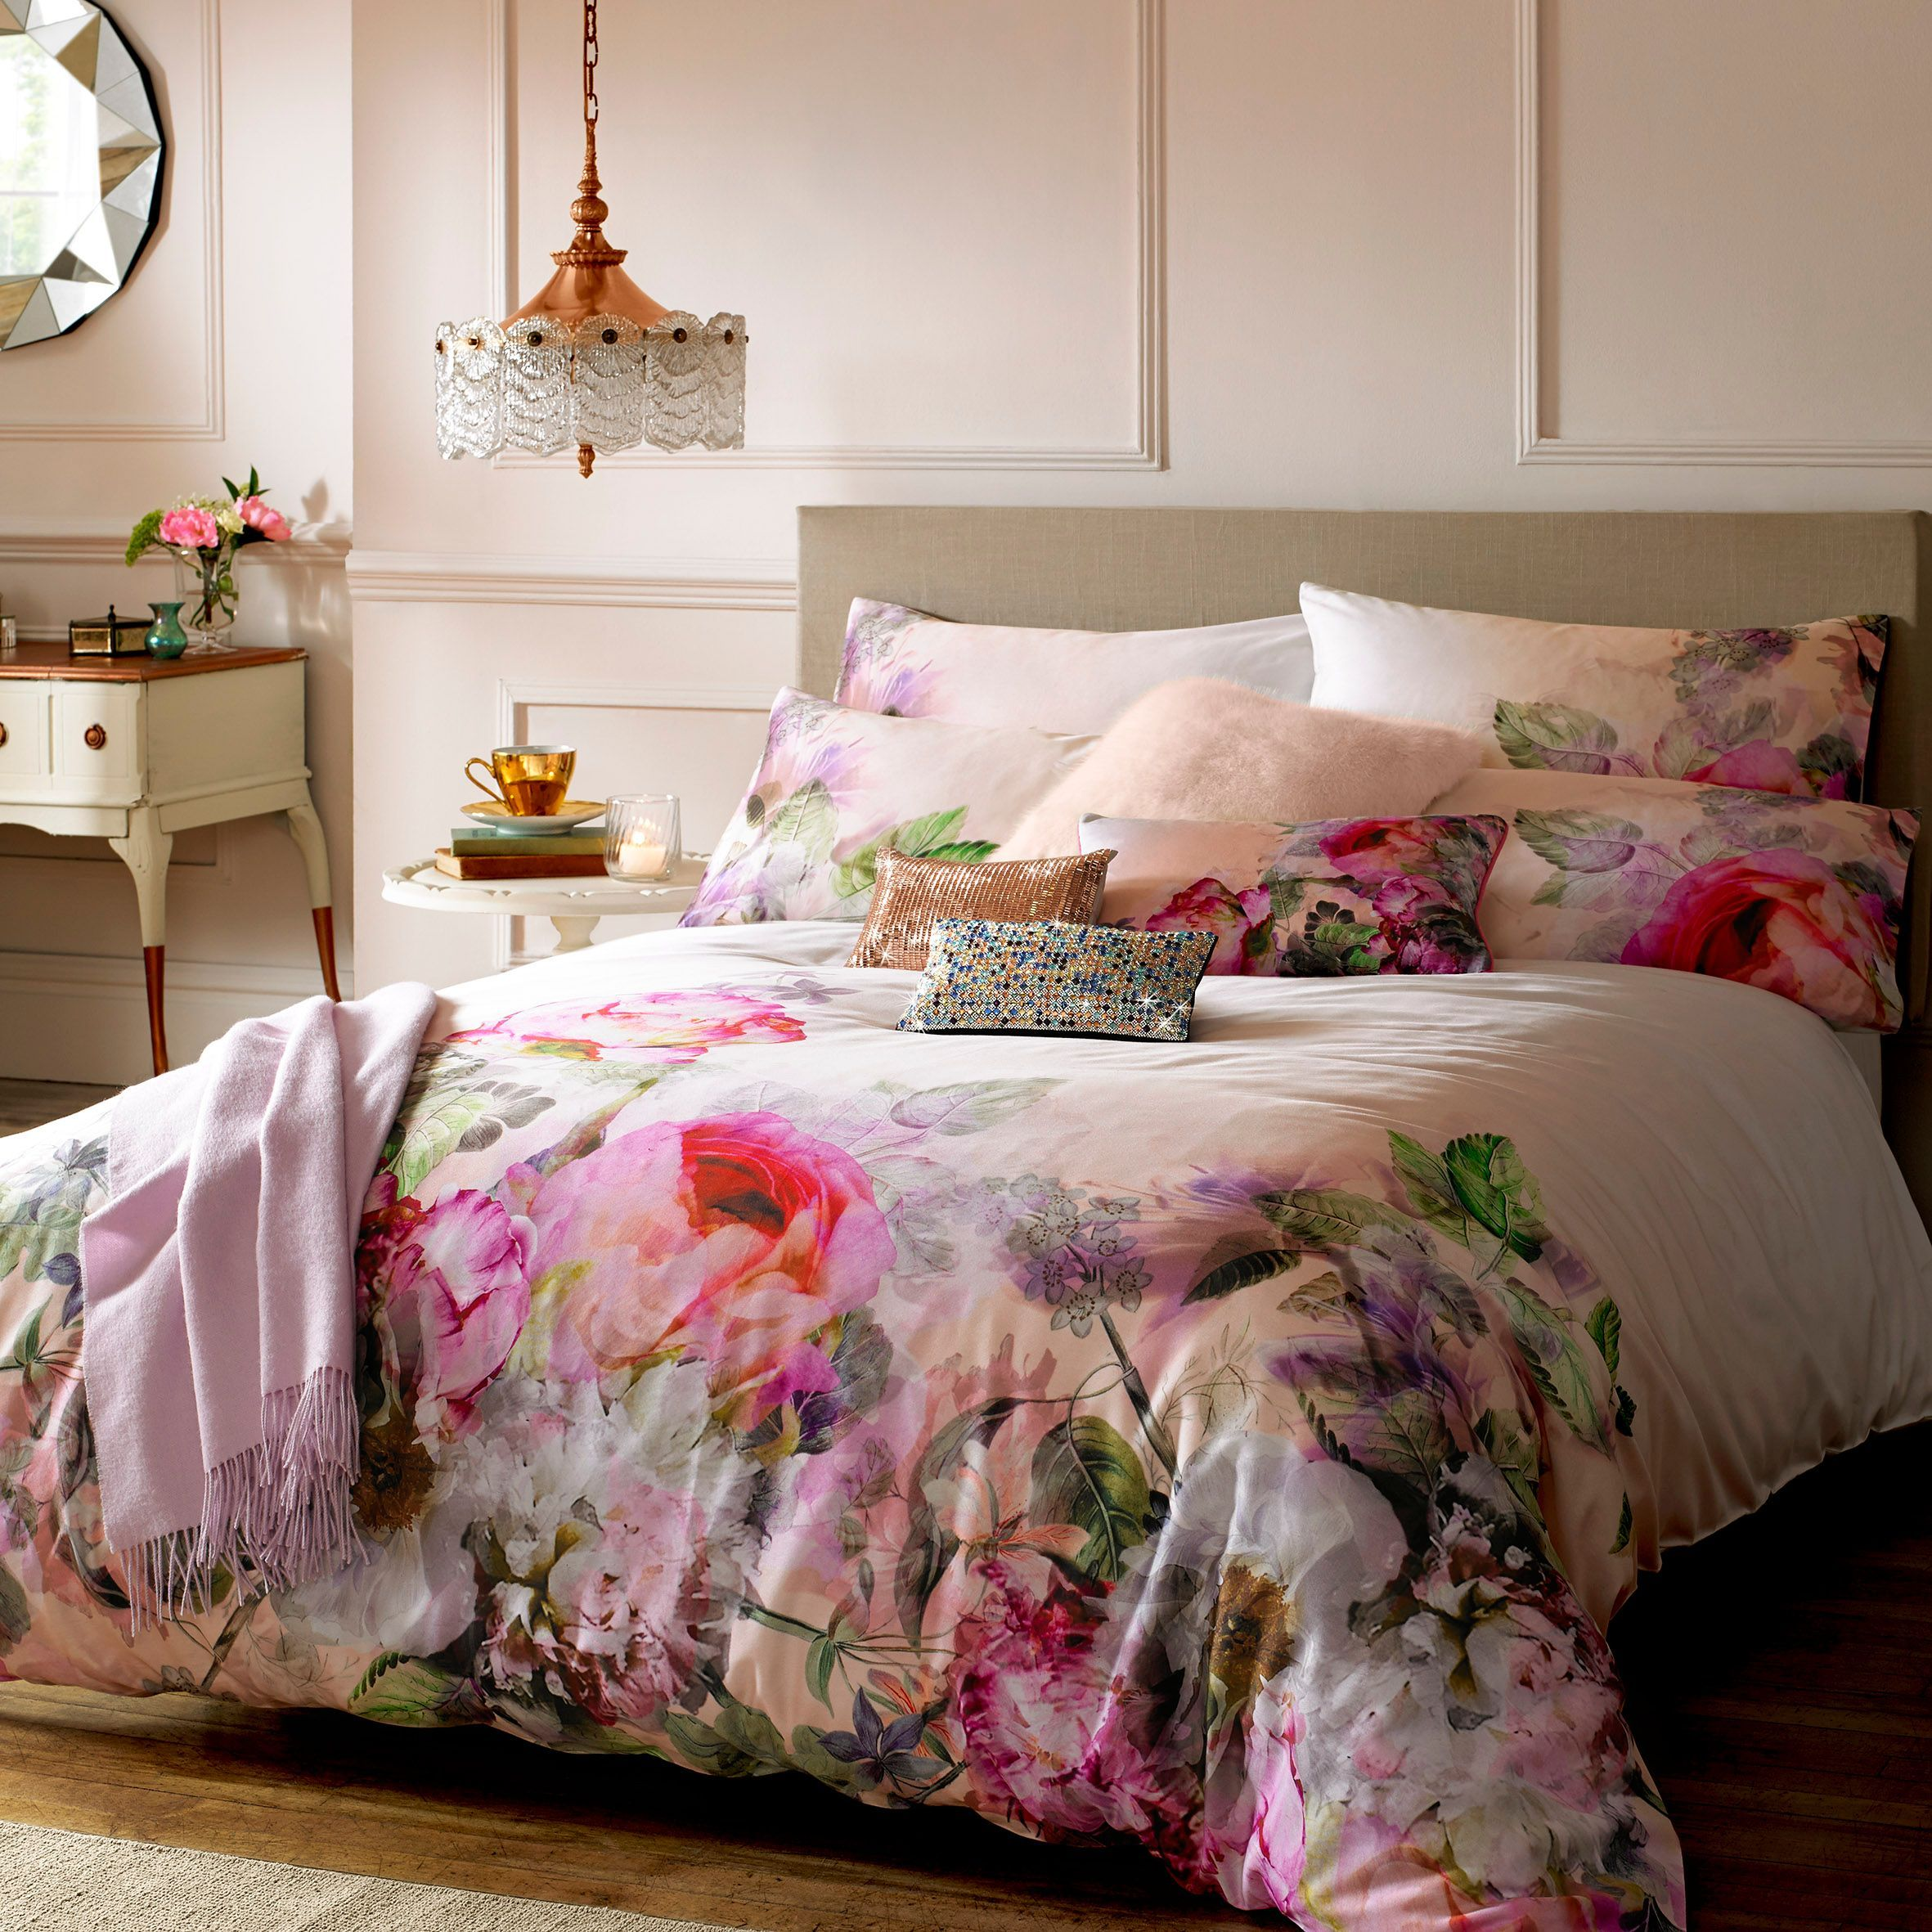 Love This Ted Baker Bedding Bedroom Interior Design Luxury Bedroom Interior Interior Design Bedroom